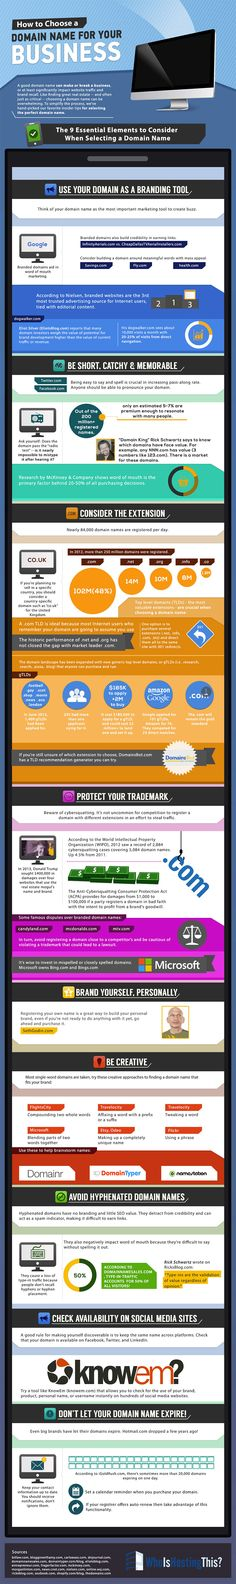 9 Steps to Choosing an Awesome Domain Name for Your New Website [INFOGRAPHIC]